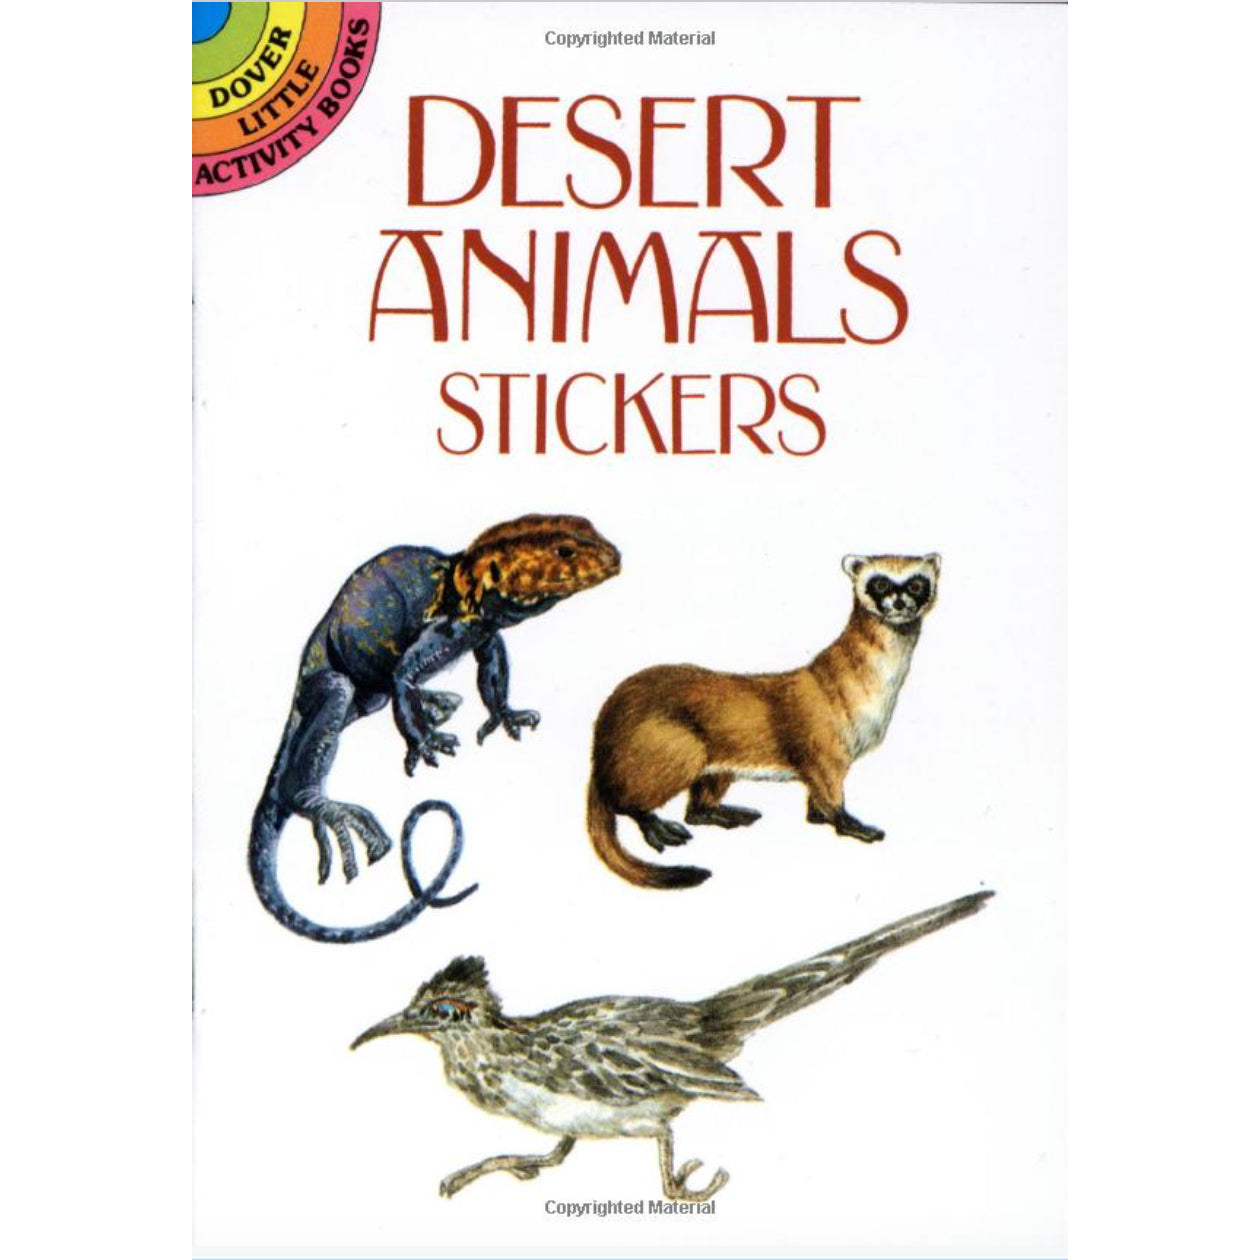 desert animal stickers